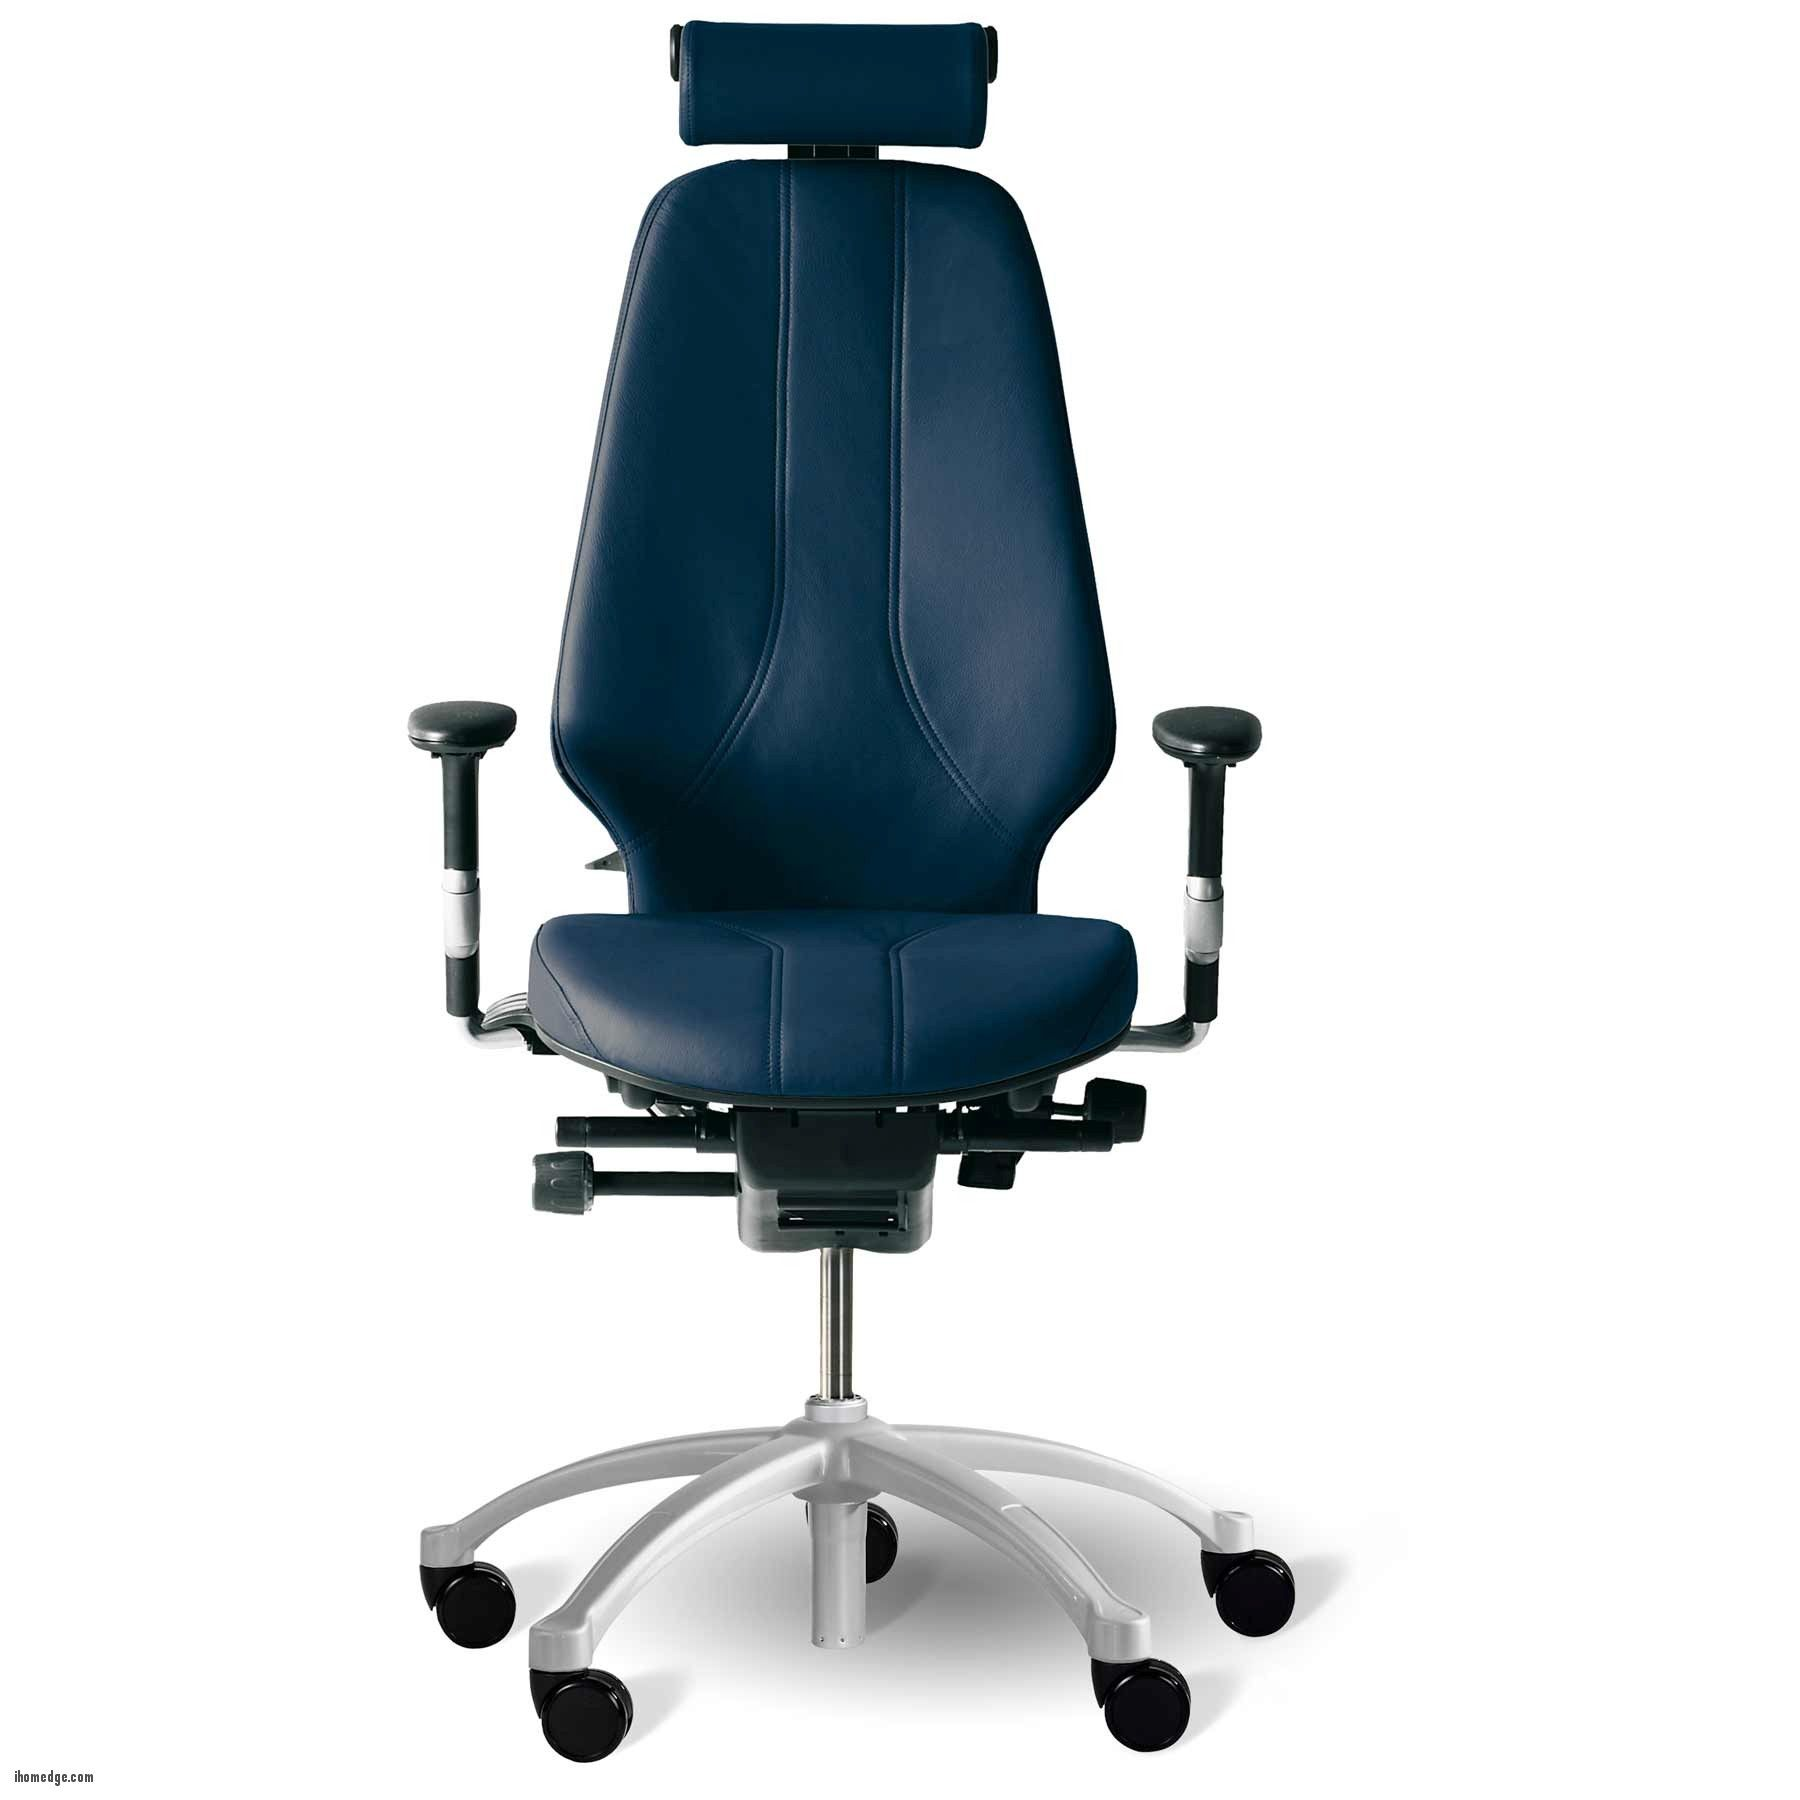 Fingal Swivel Chair Markus Swivel Chair Sonnebo Blue Ikea Official Business